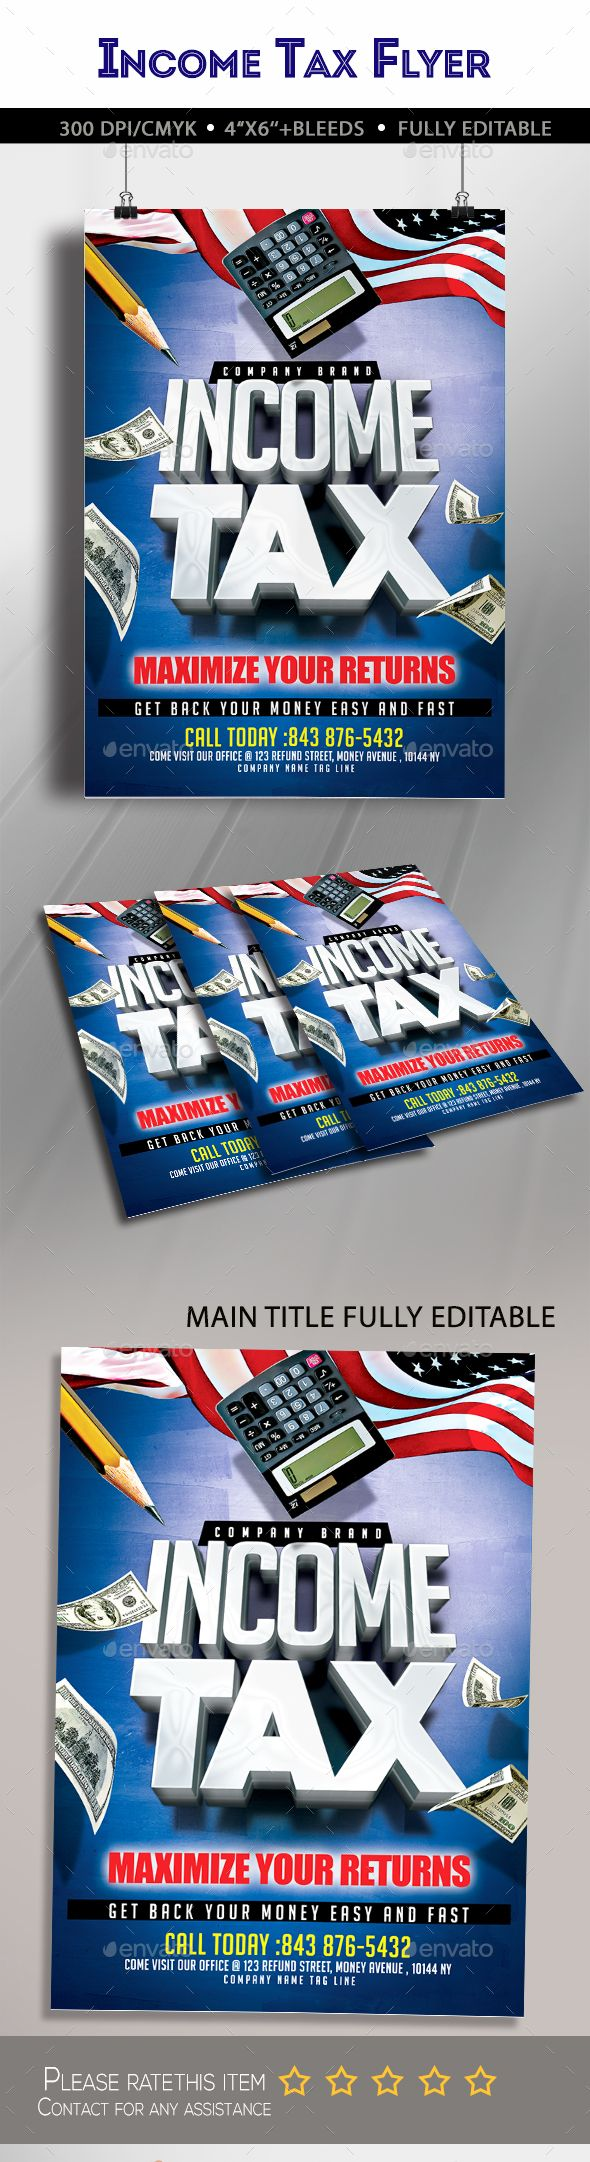 Income Tax Flyer | Party flyer, Flyer template and Fonts